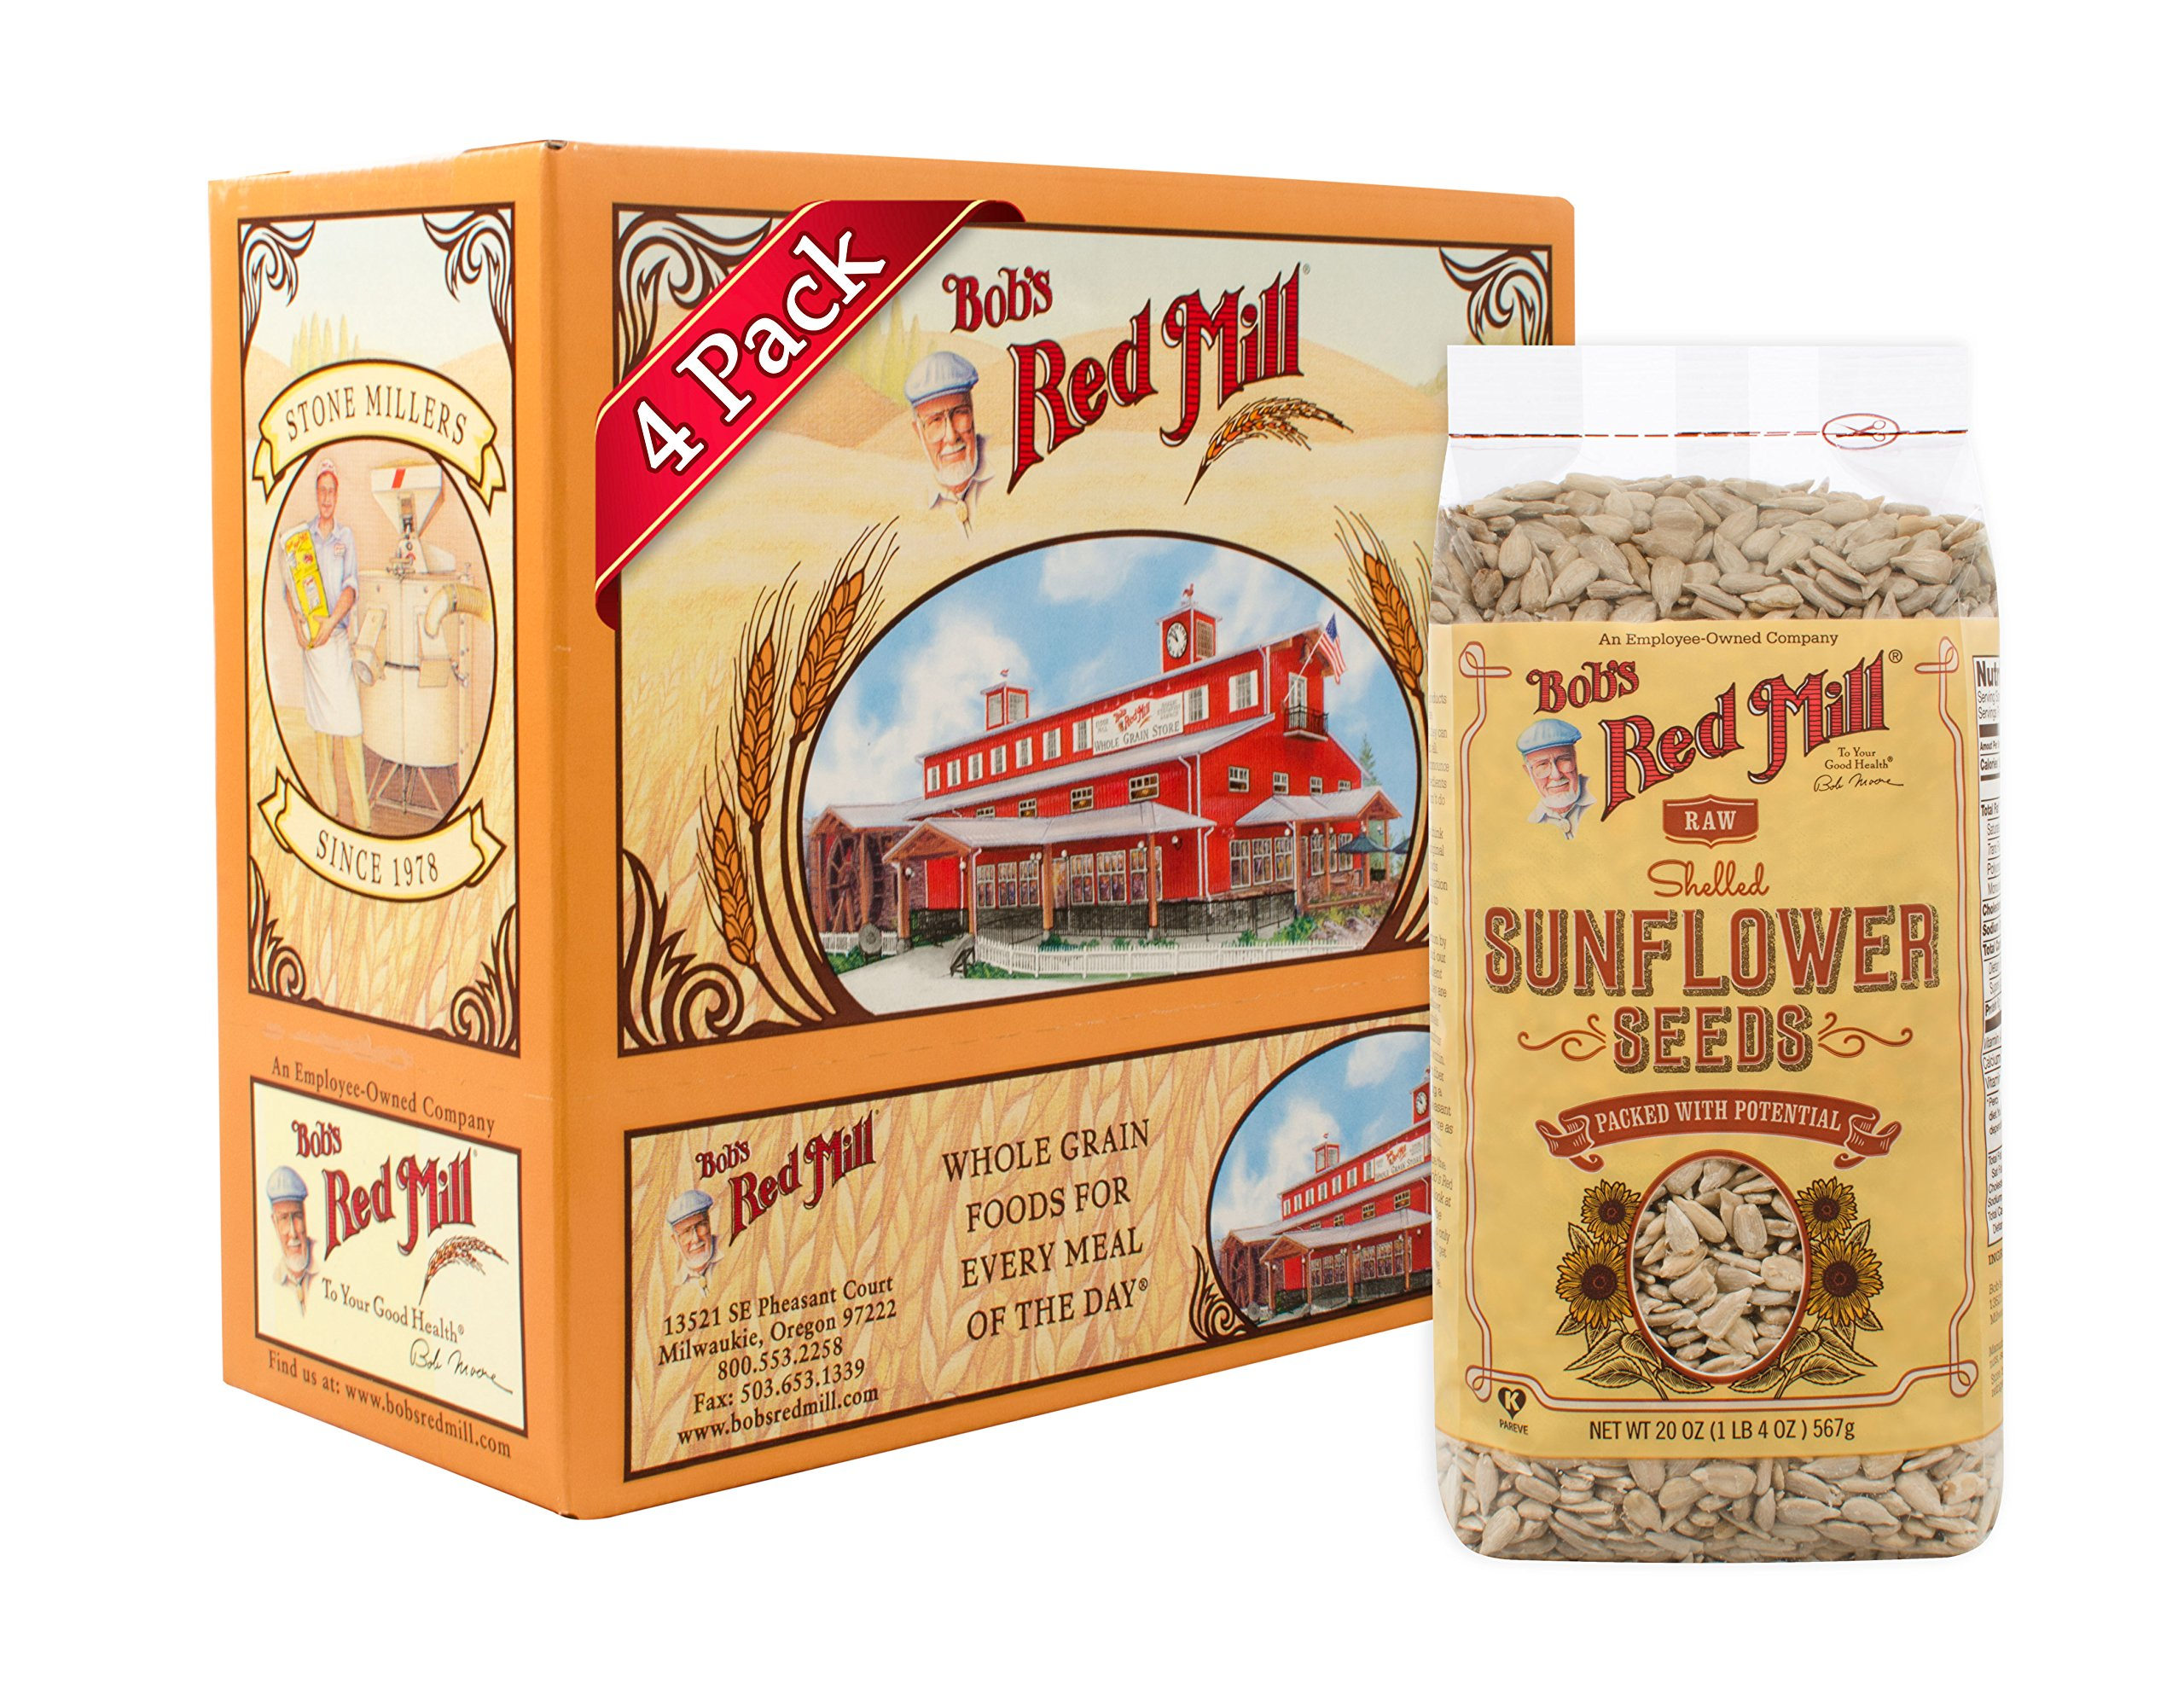 Bob's Red Mill Raw Shelled Sunflower Seeds (Kernels Only), 20-ounce (Pack of 4) by Bob's Red Mill